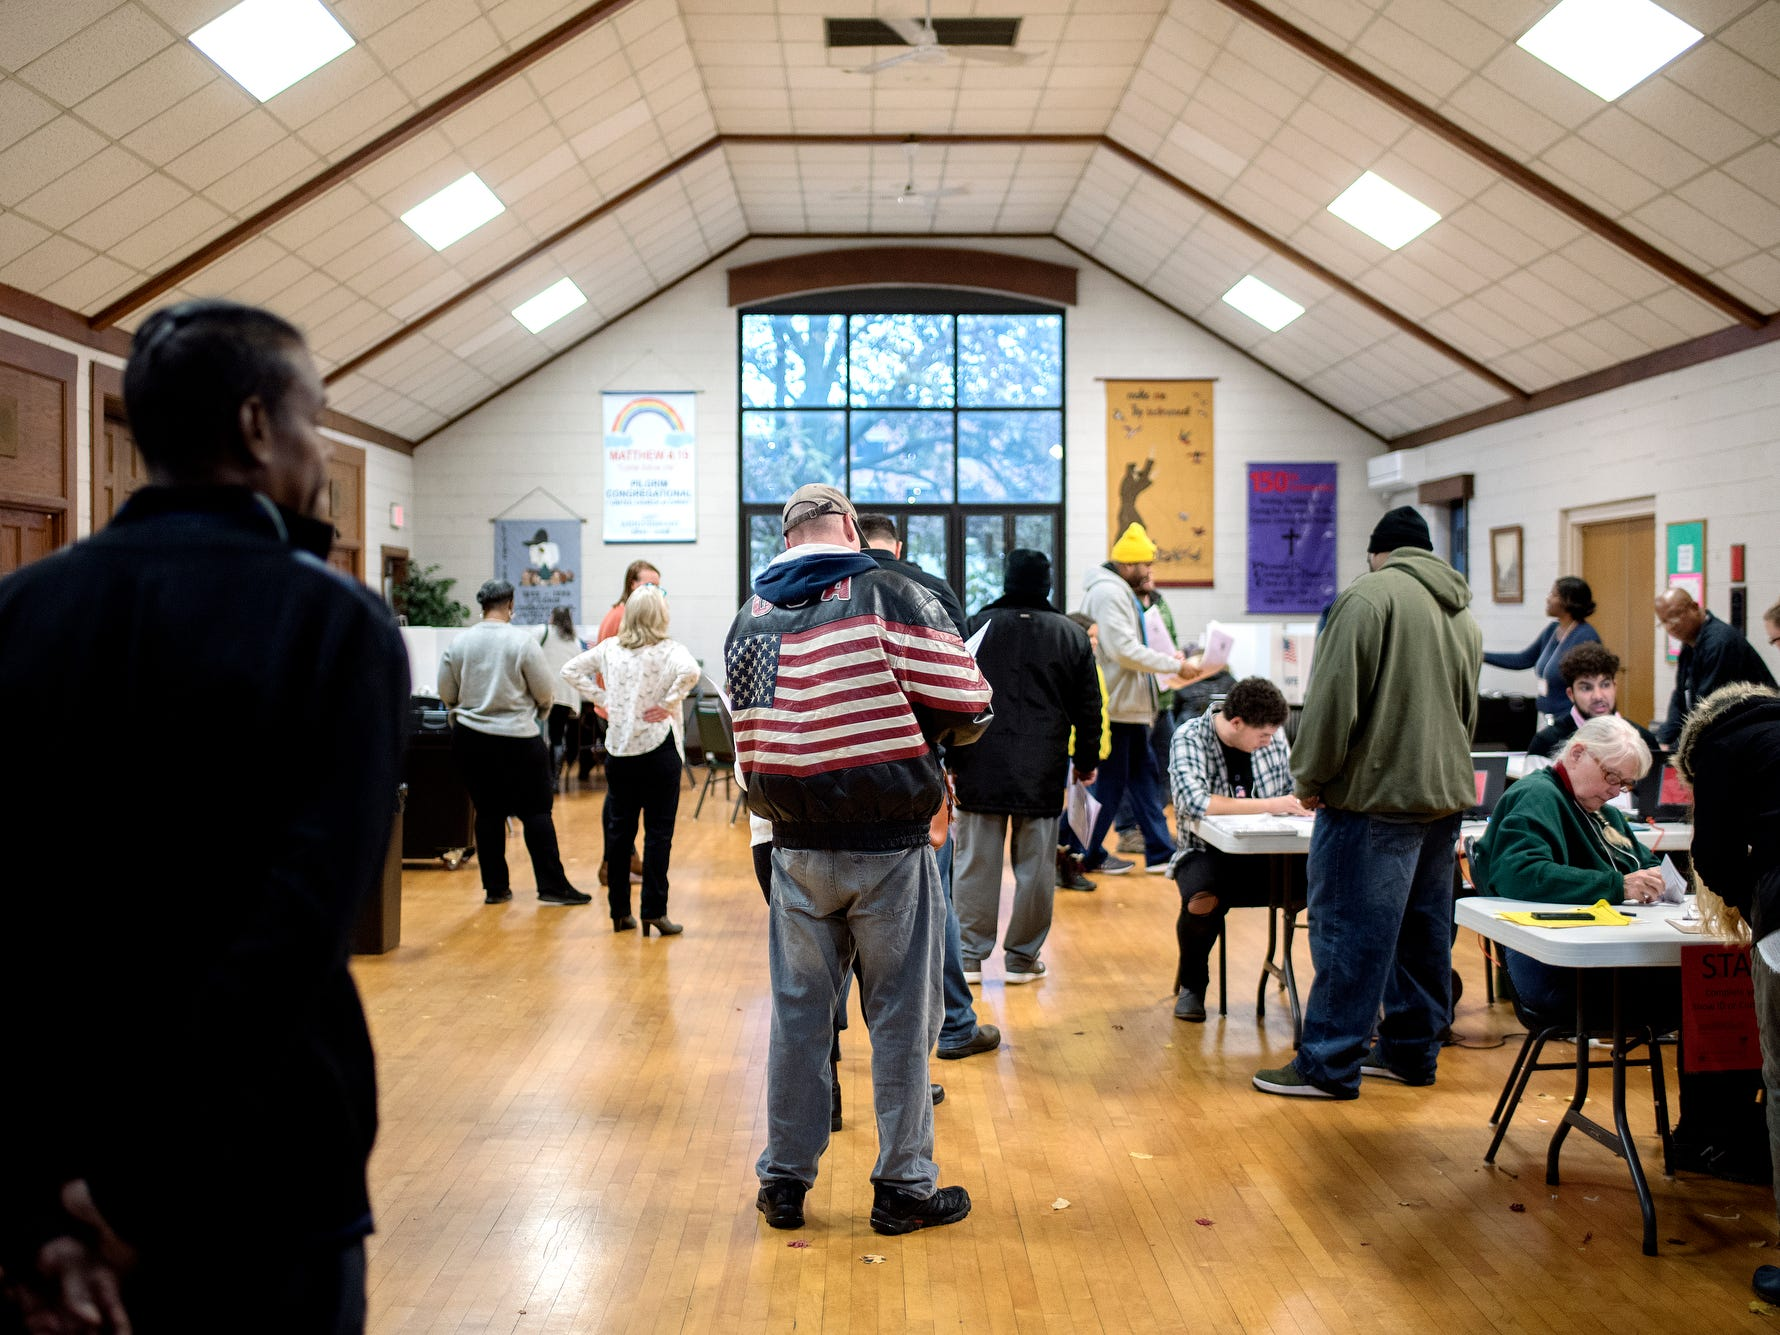 People vote at the polling place inside the Pilgrim Congregational United Church of Christ on Tuesday, Nov. 6, 2018, in Lansing.